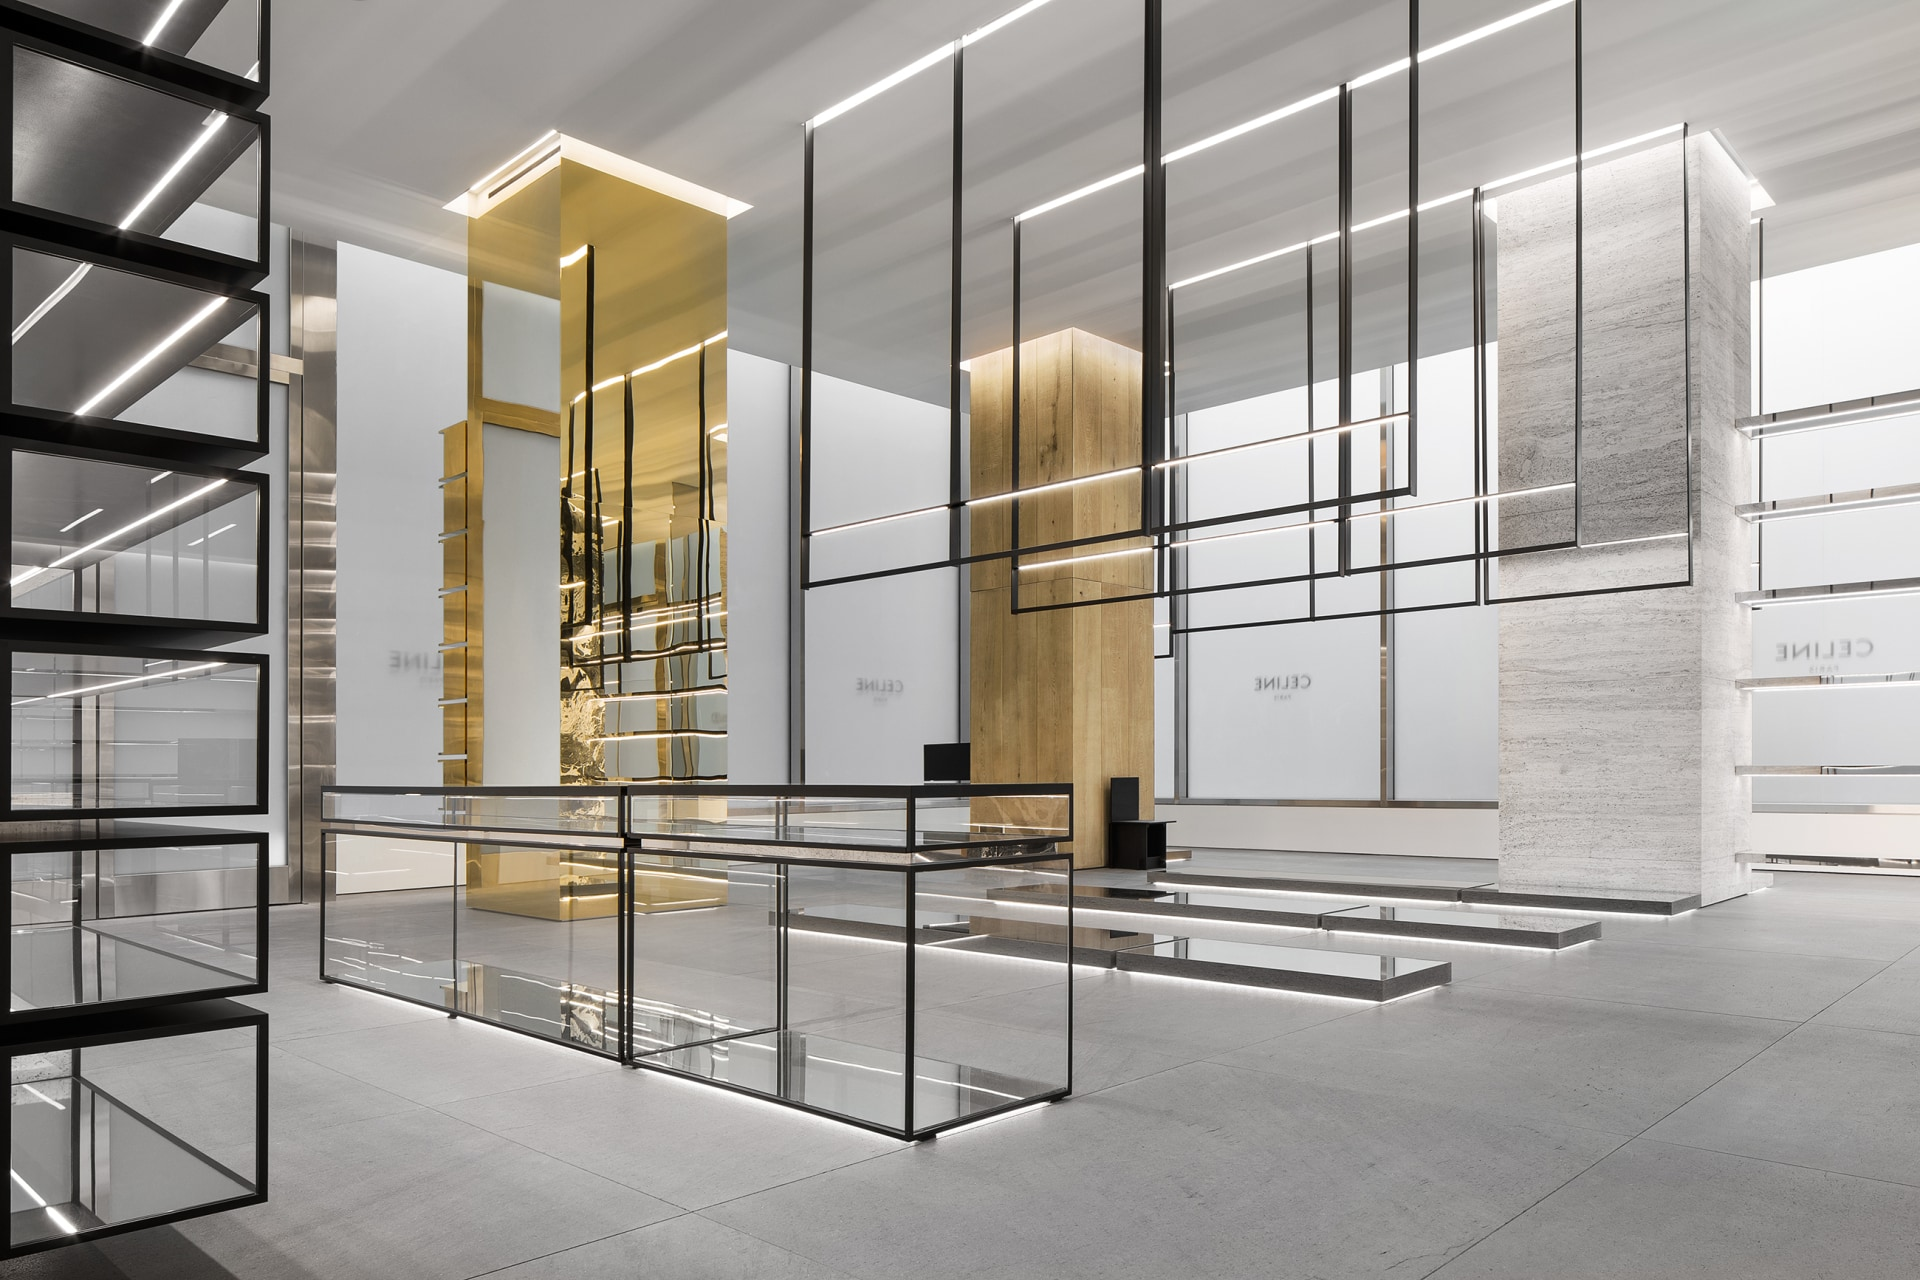 Go inside the first Hedi Slimane-designed Celine store